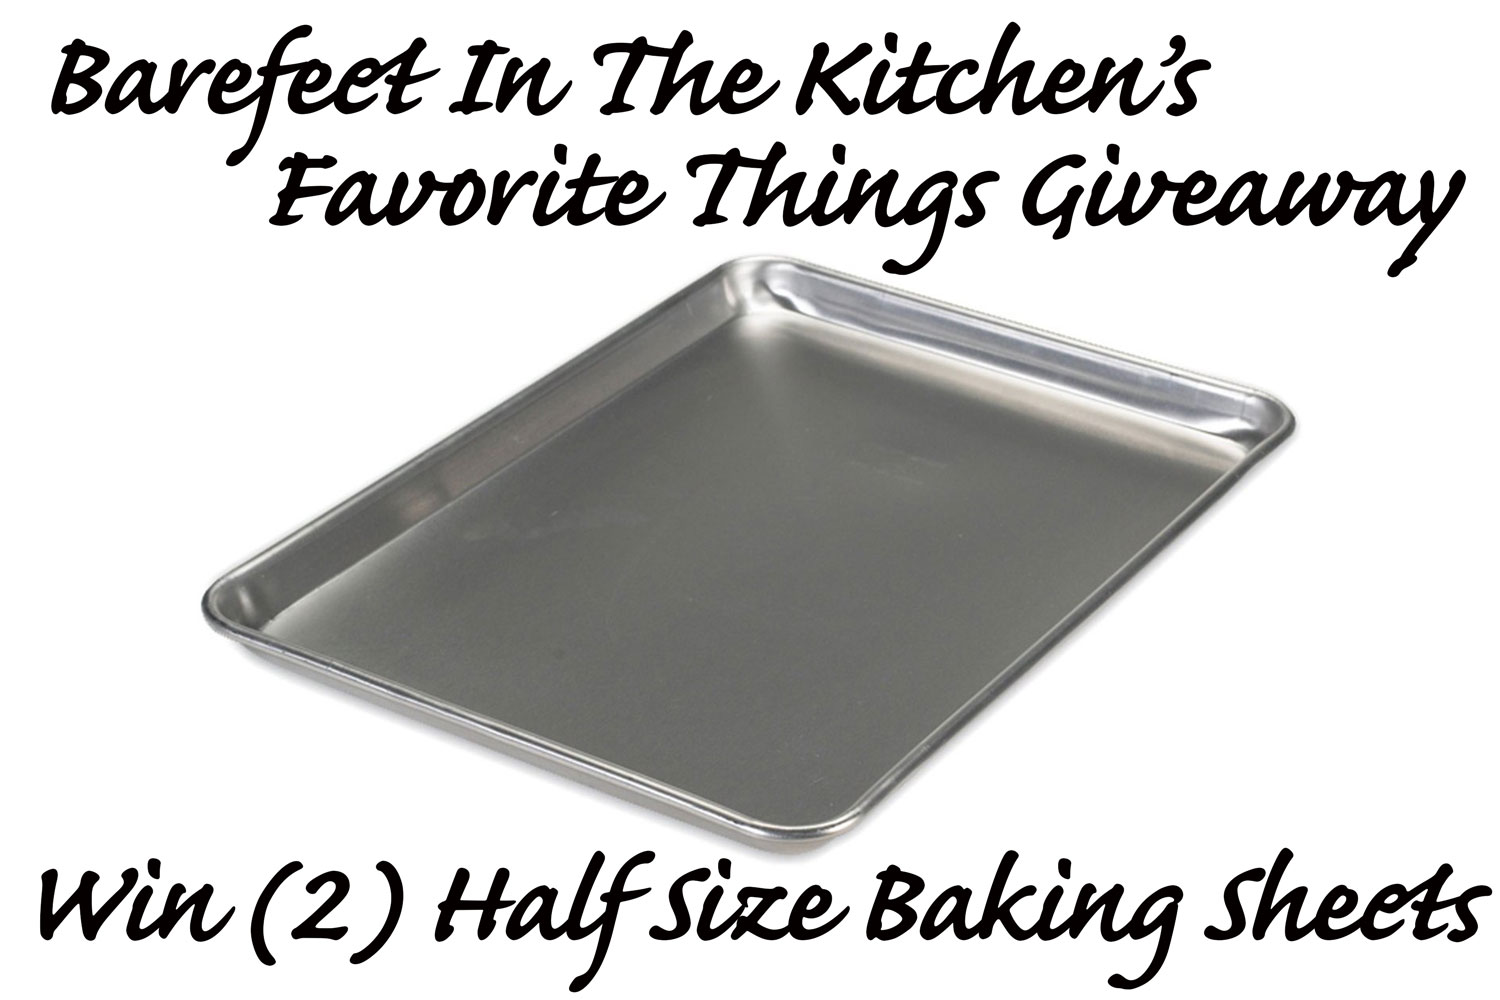 Favorite Things Sheet Pan Giveaway from Barefeet In The Kitchen